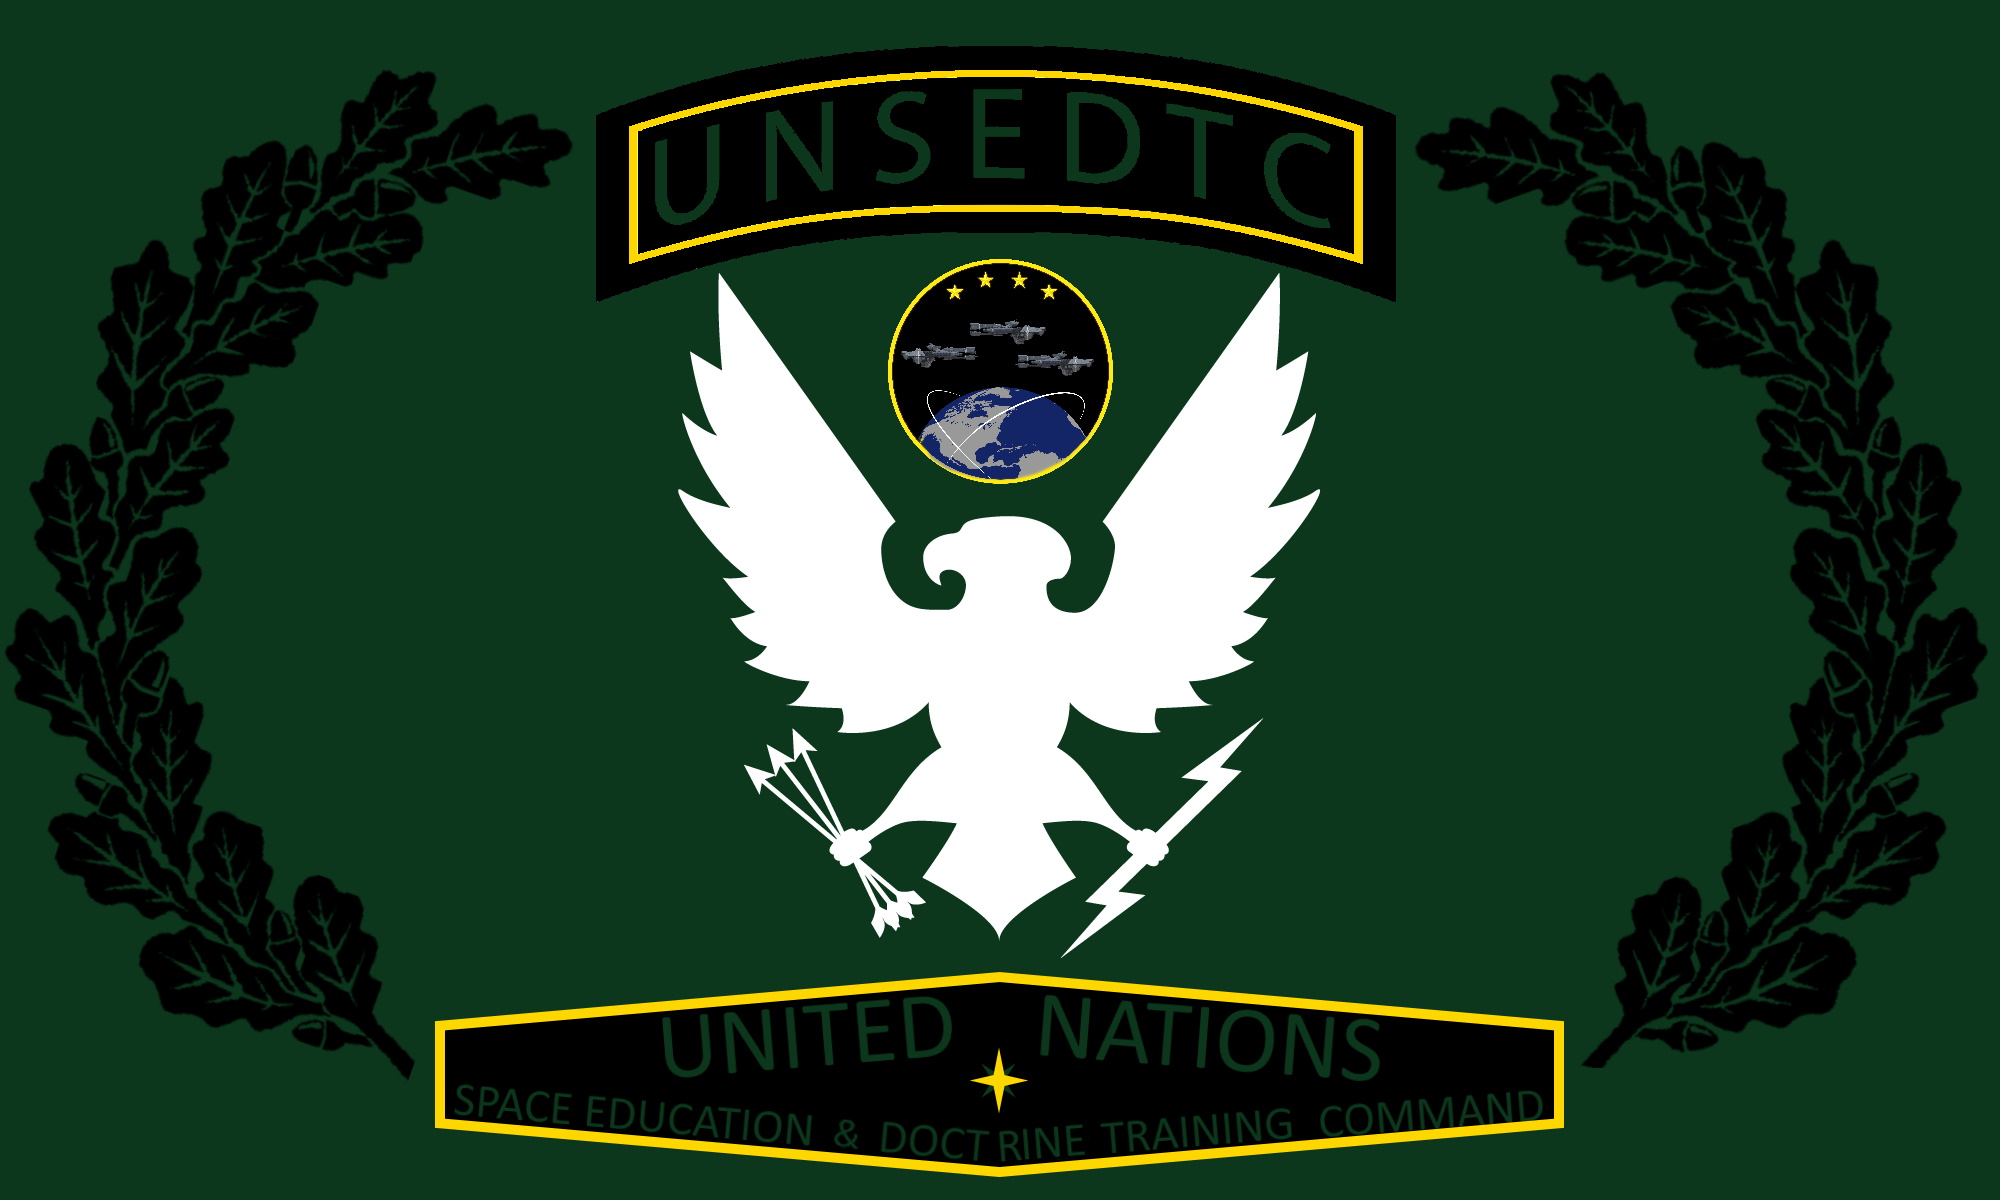 UNSC Education and Doctrine Training Command